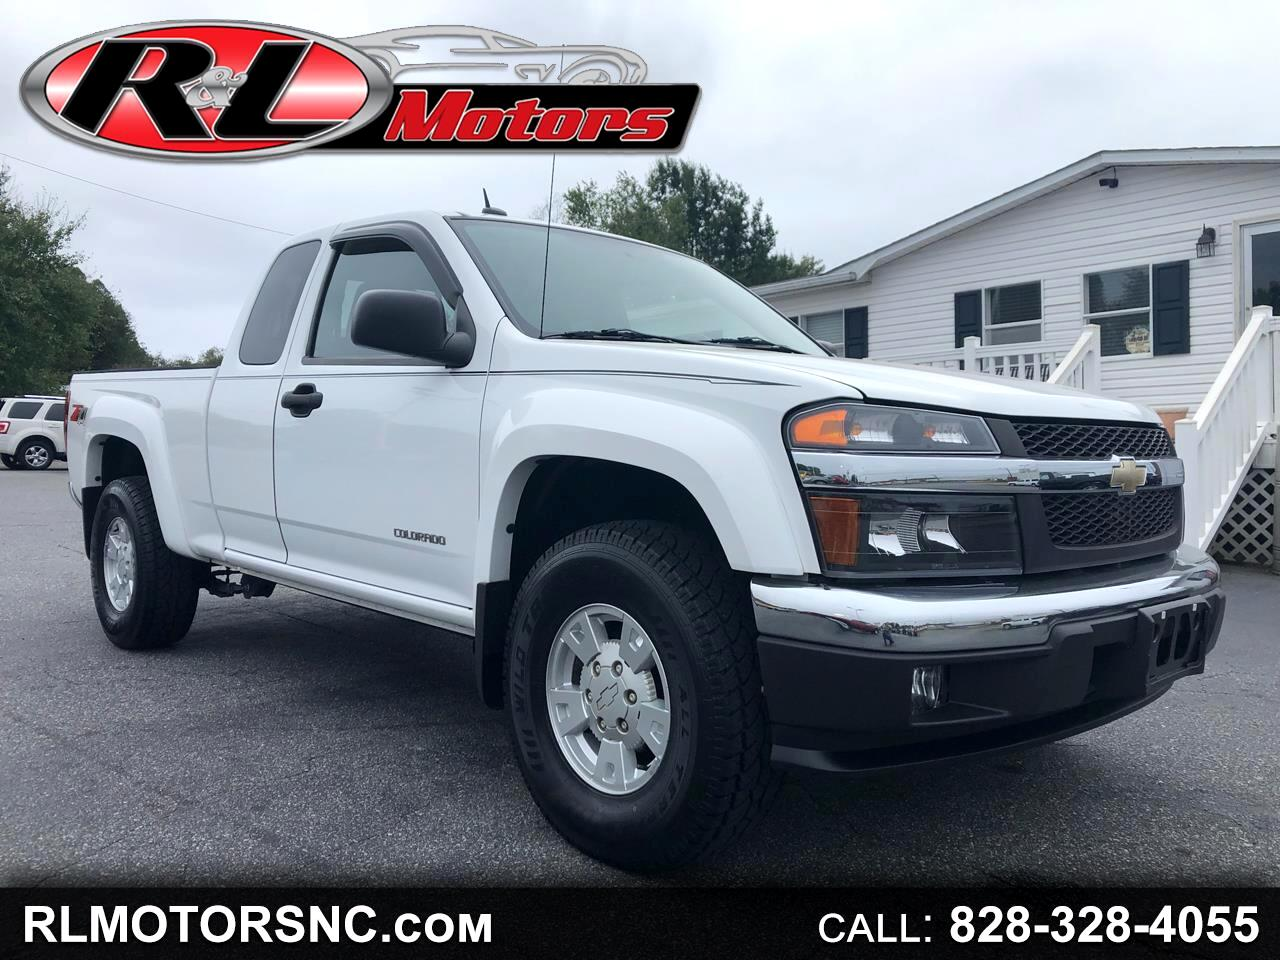 2005 Chevrolet Colorado Z71 Ext. Cab 4WD